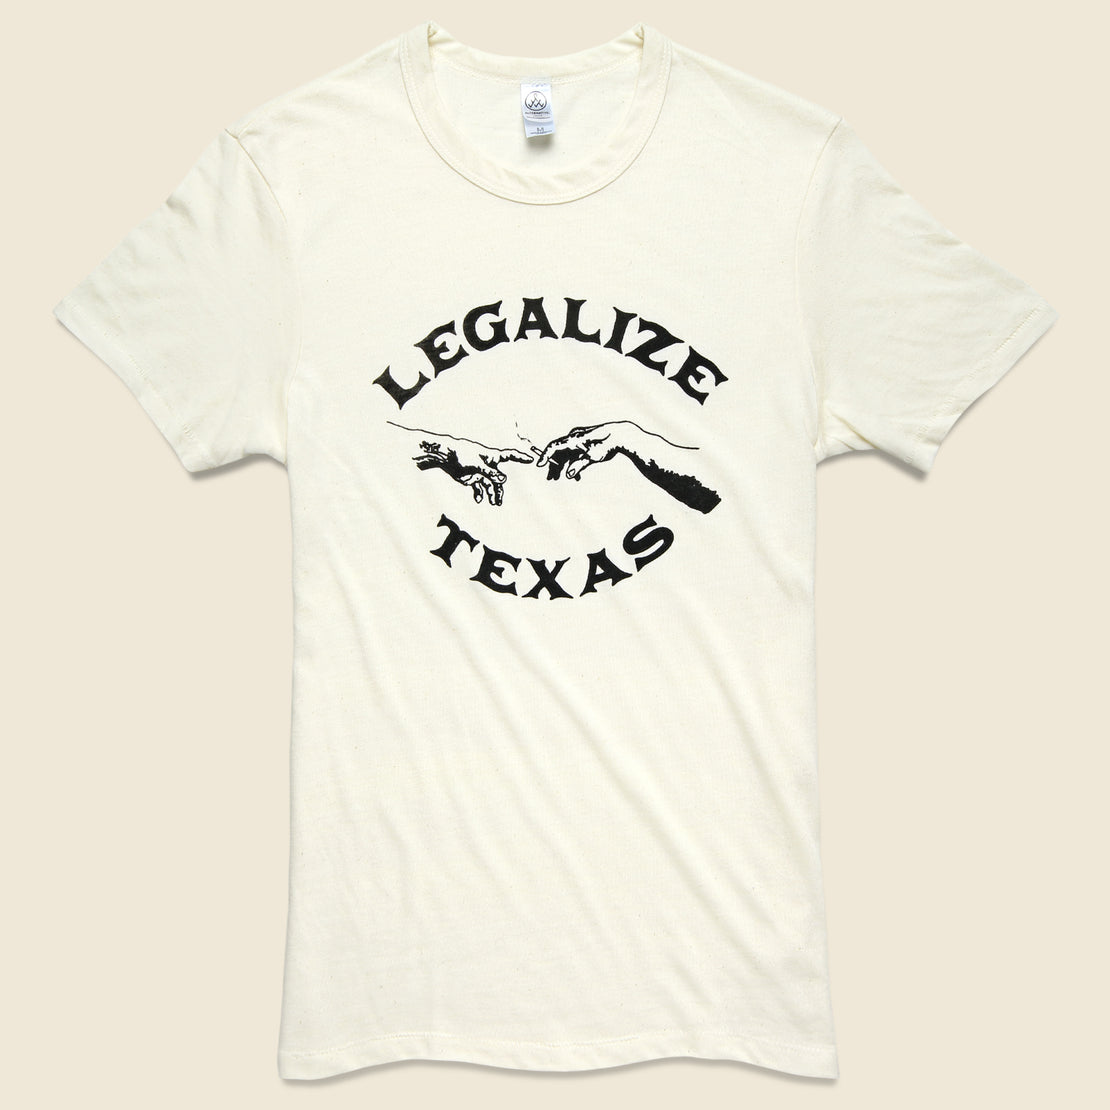 Alchemy Design Graphic Tee - Legalize Texas